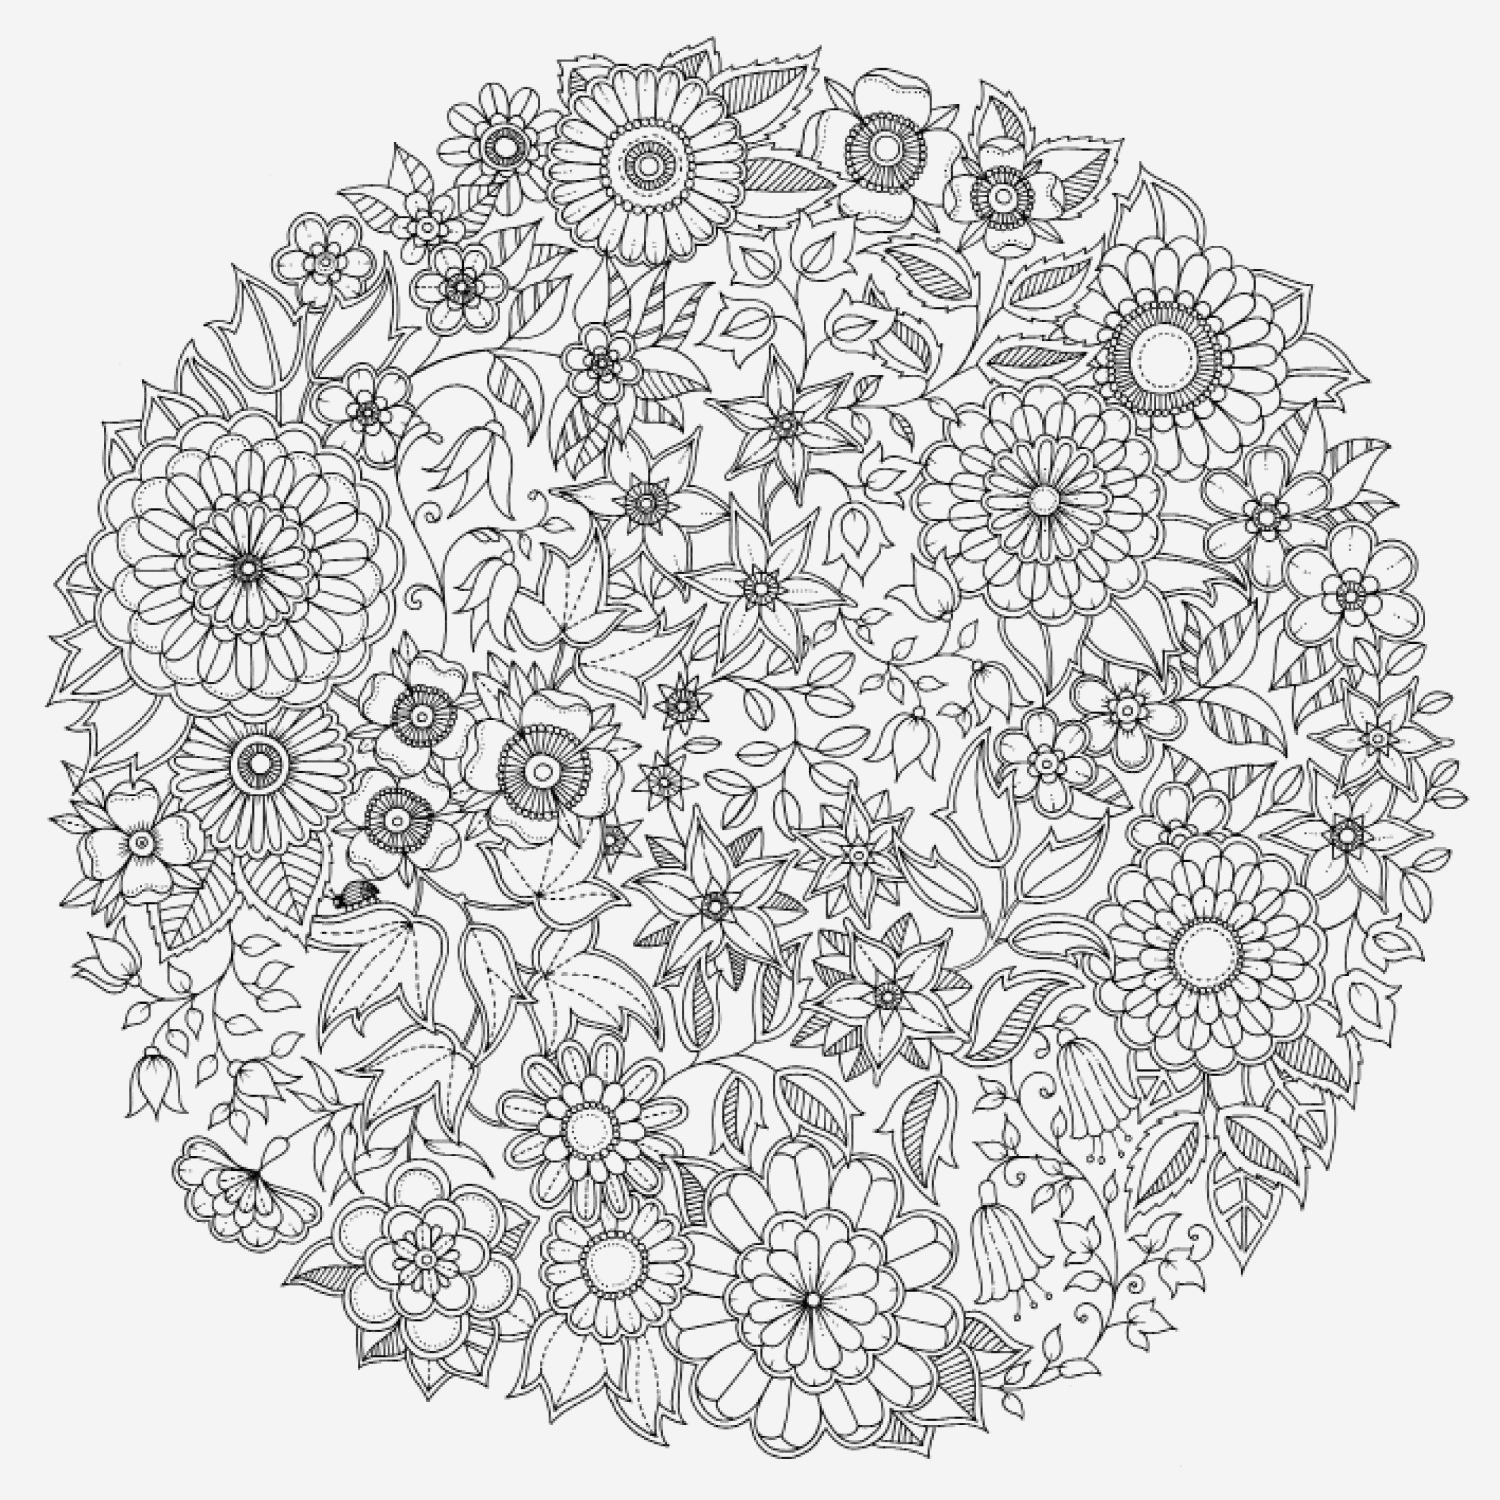 Coloriage Mandala Anti Stress Awesome Coloriage Anti Stress Les Beaux Dessins De Autres